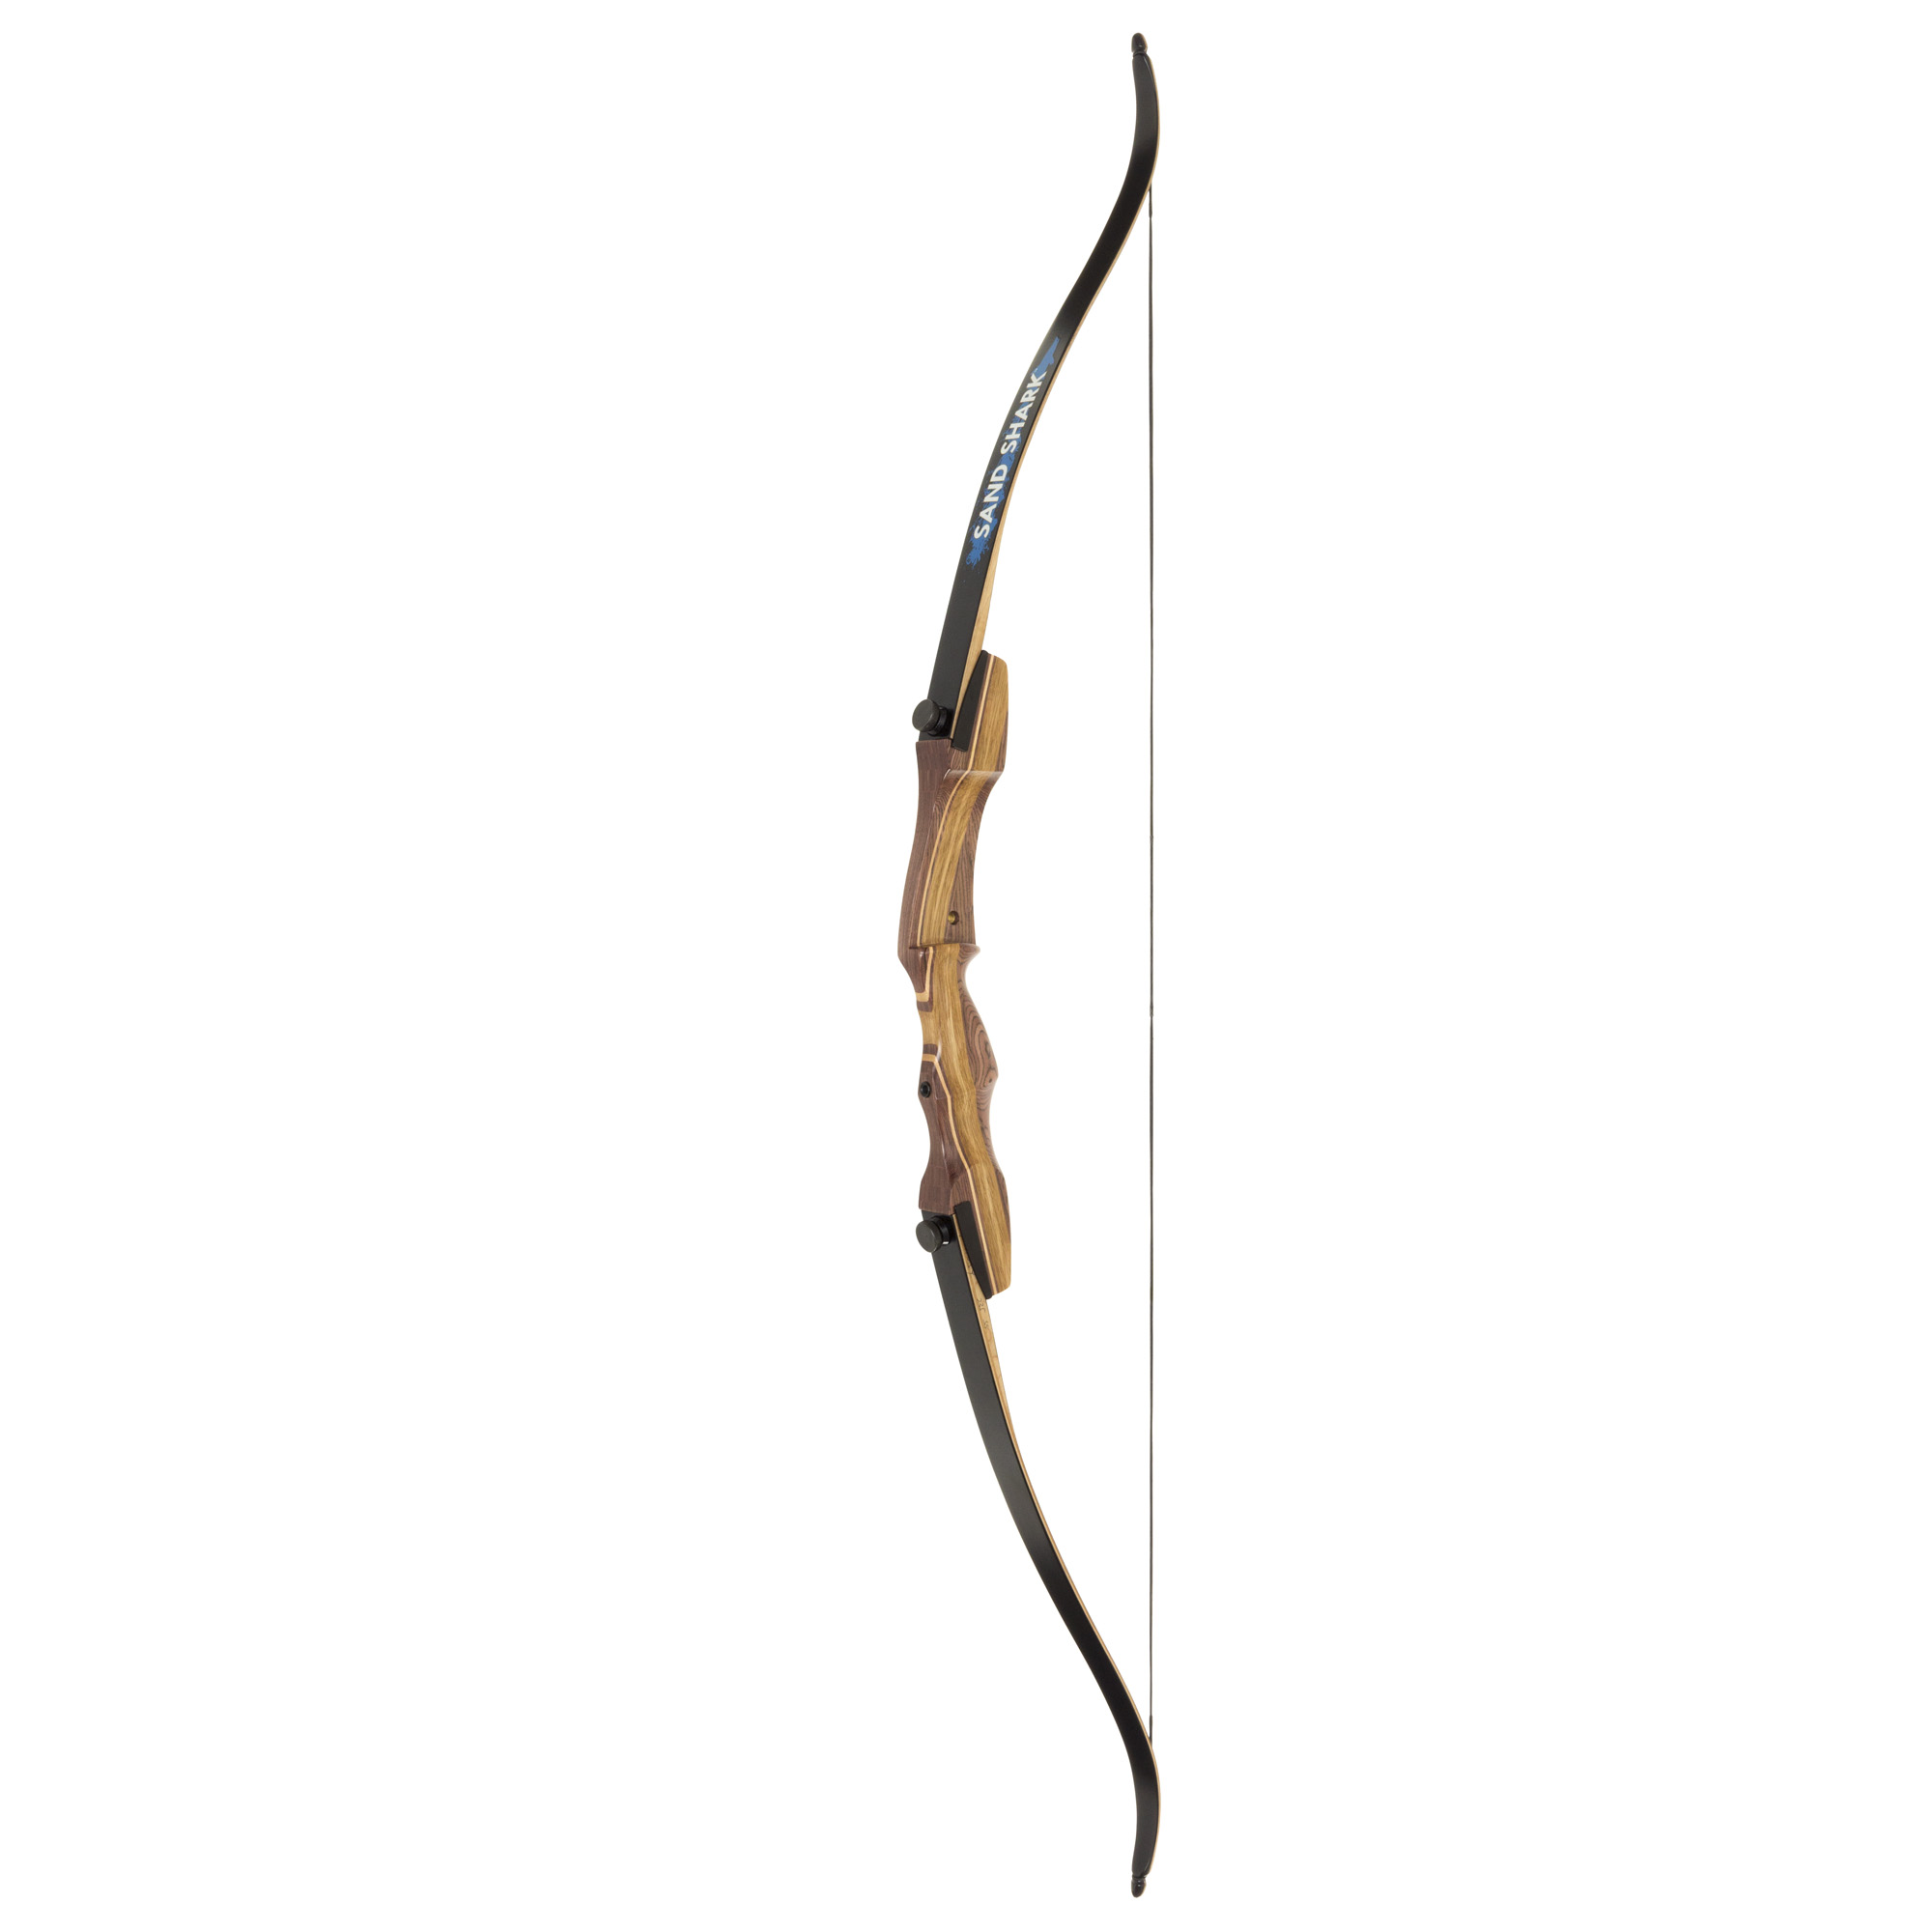 Sand Shark Recurve Bowfishing Bow